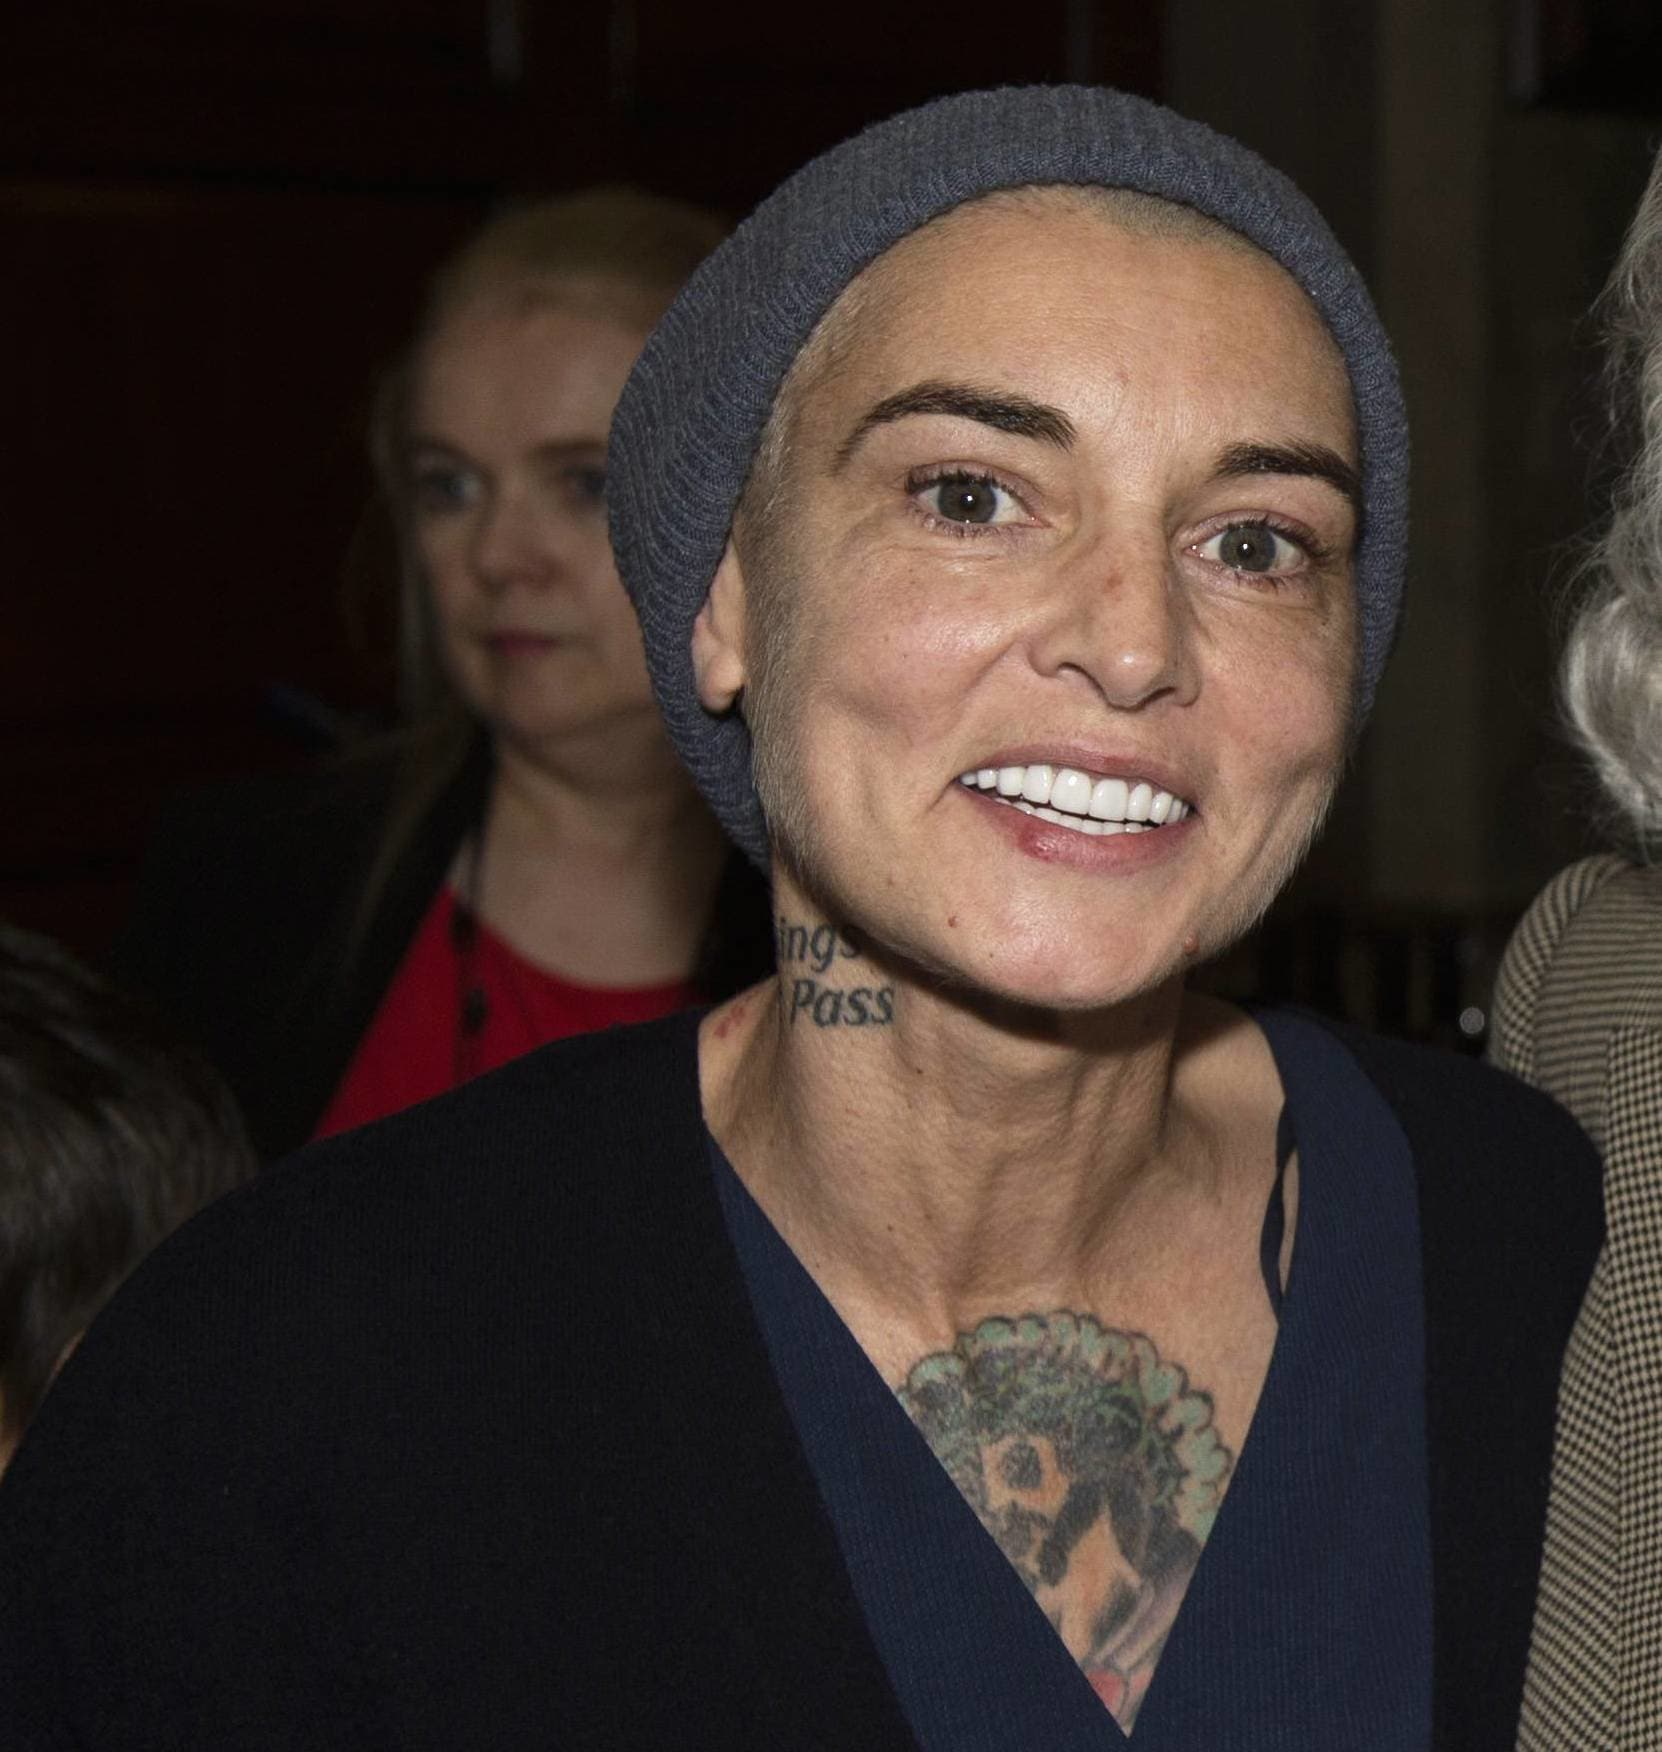 Sinead O Connor Scandals The Hollywood Gossip